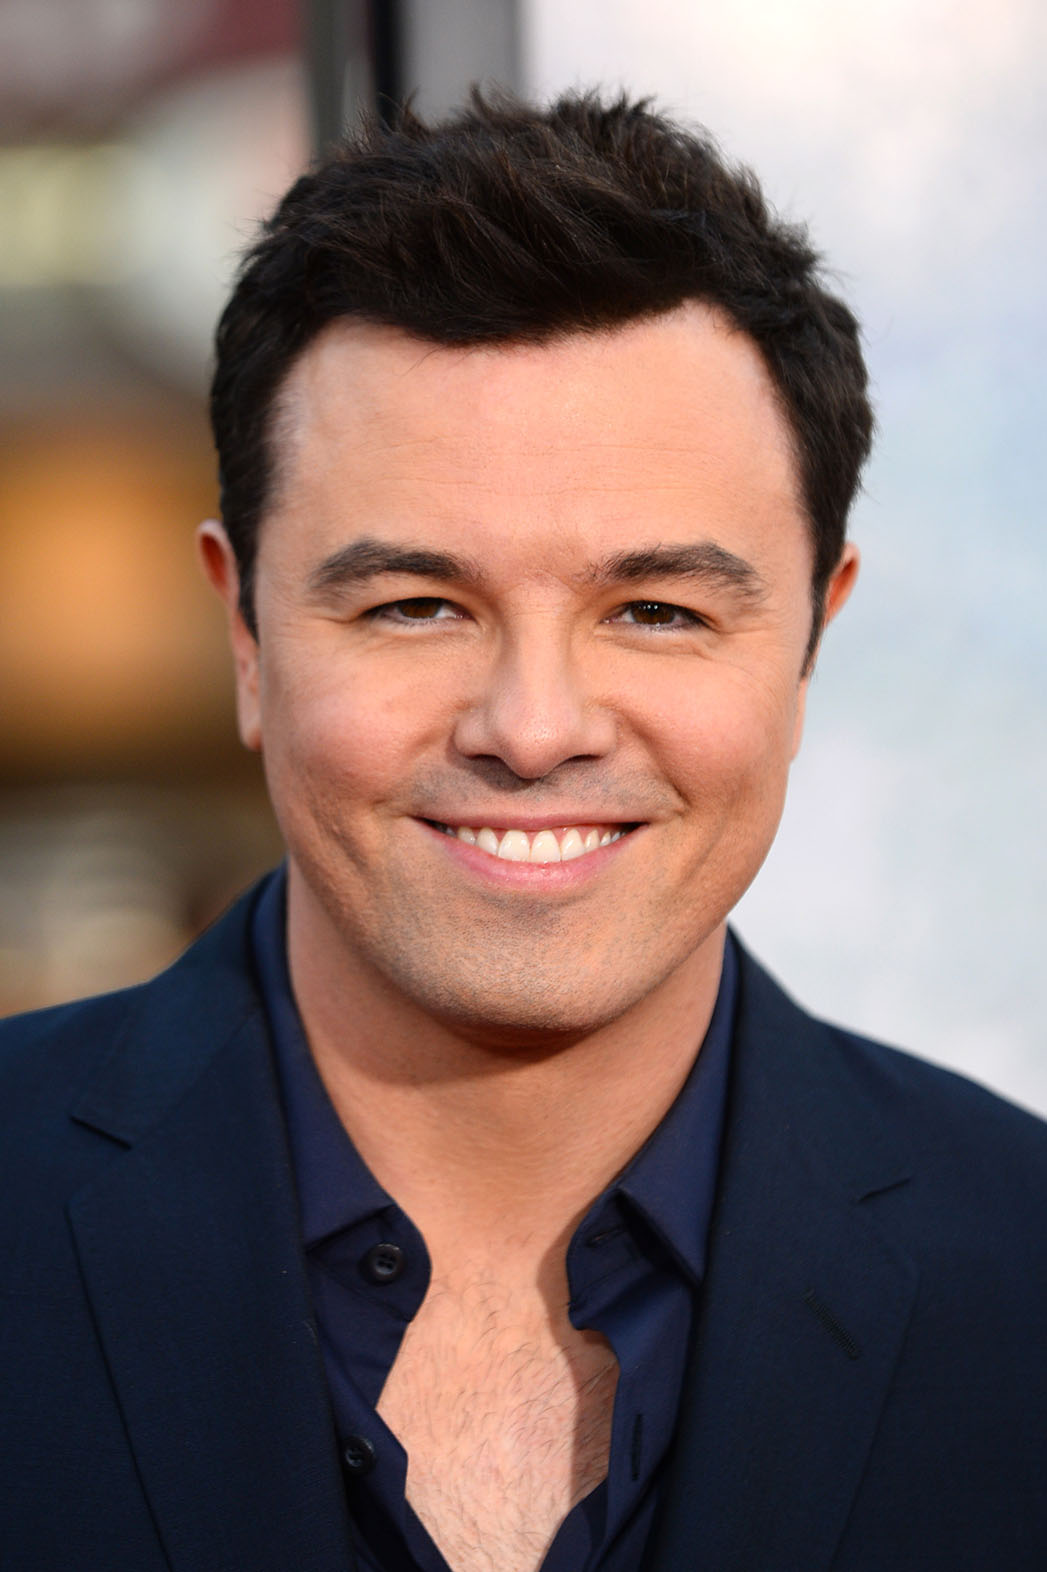 New Album Releases In Full Swing Seth Macfarlane The